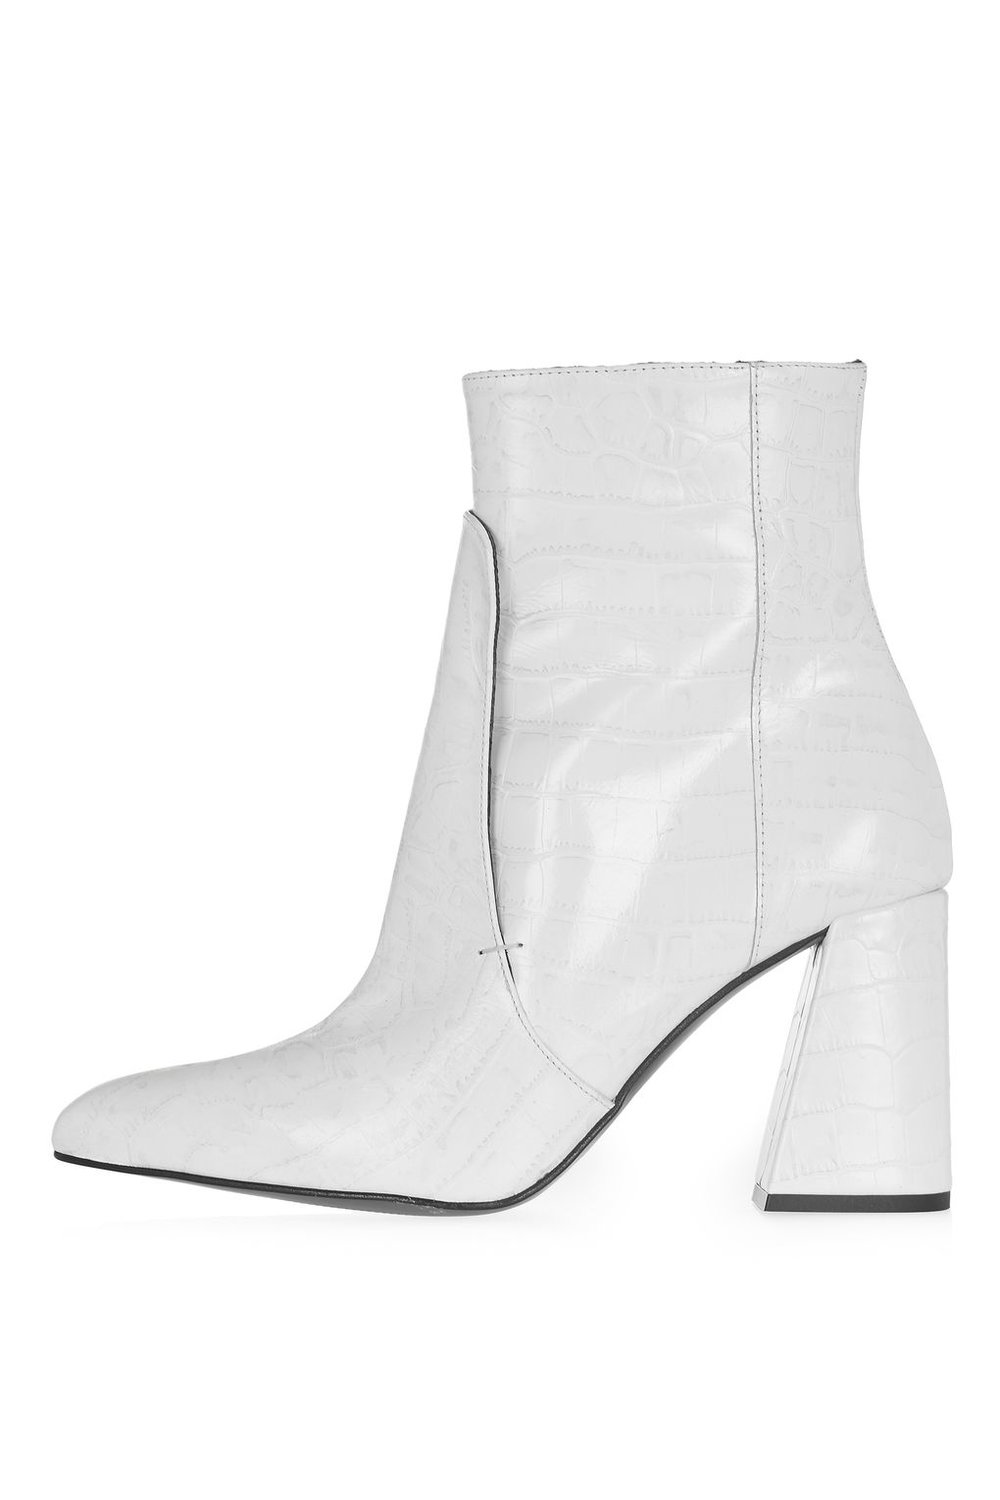 White Heeled Booties | $170